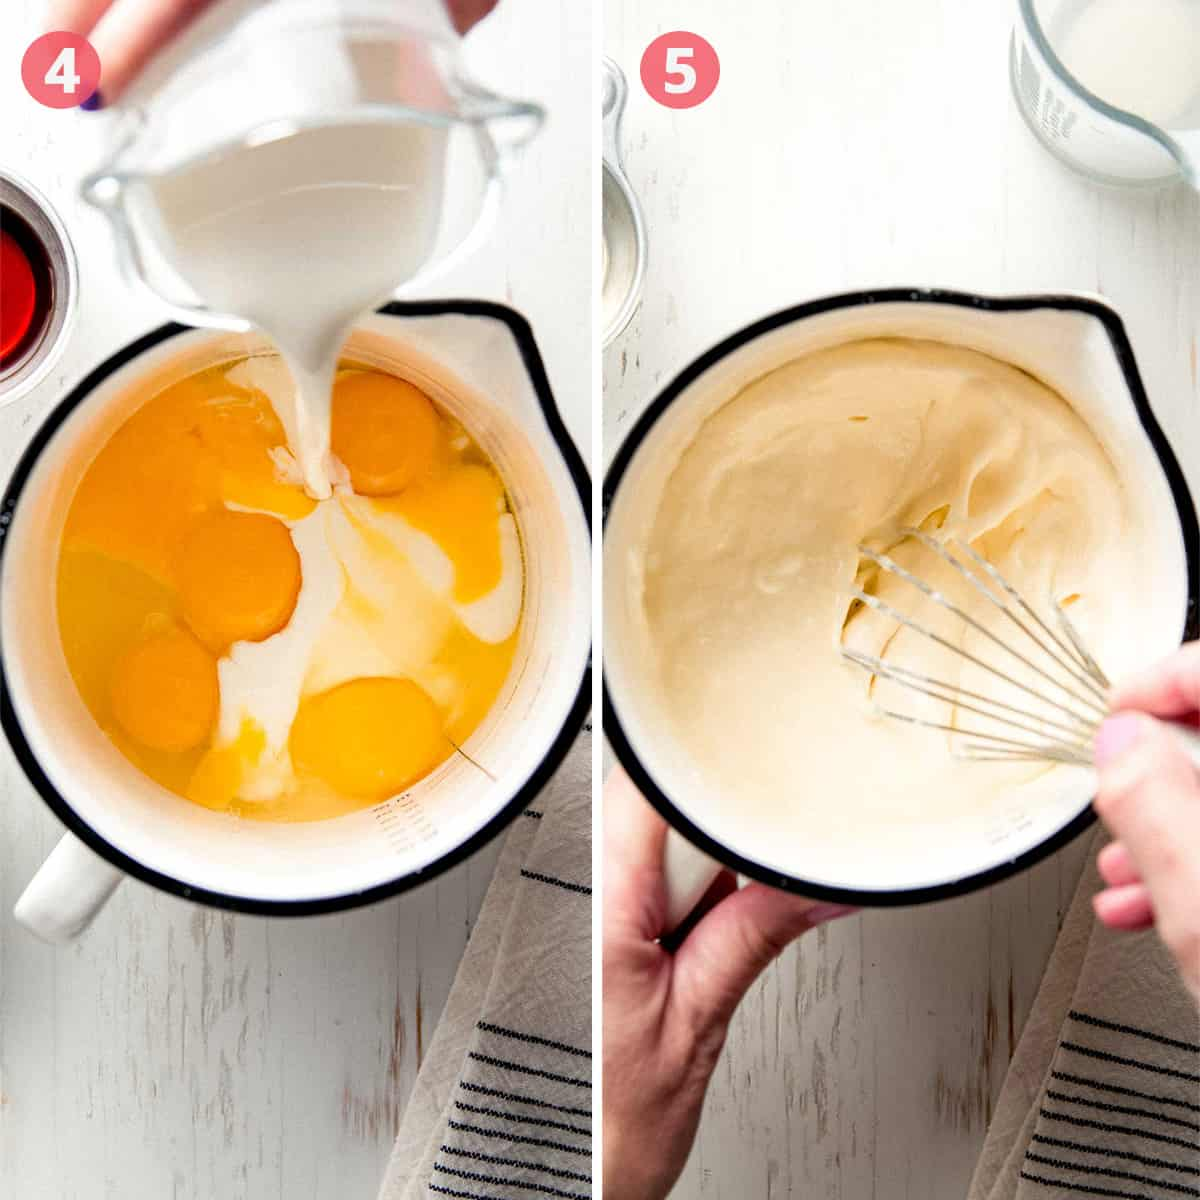 Pouring cream into eggs in a bowl, whisking the wet mixture.